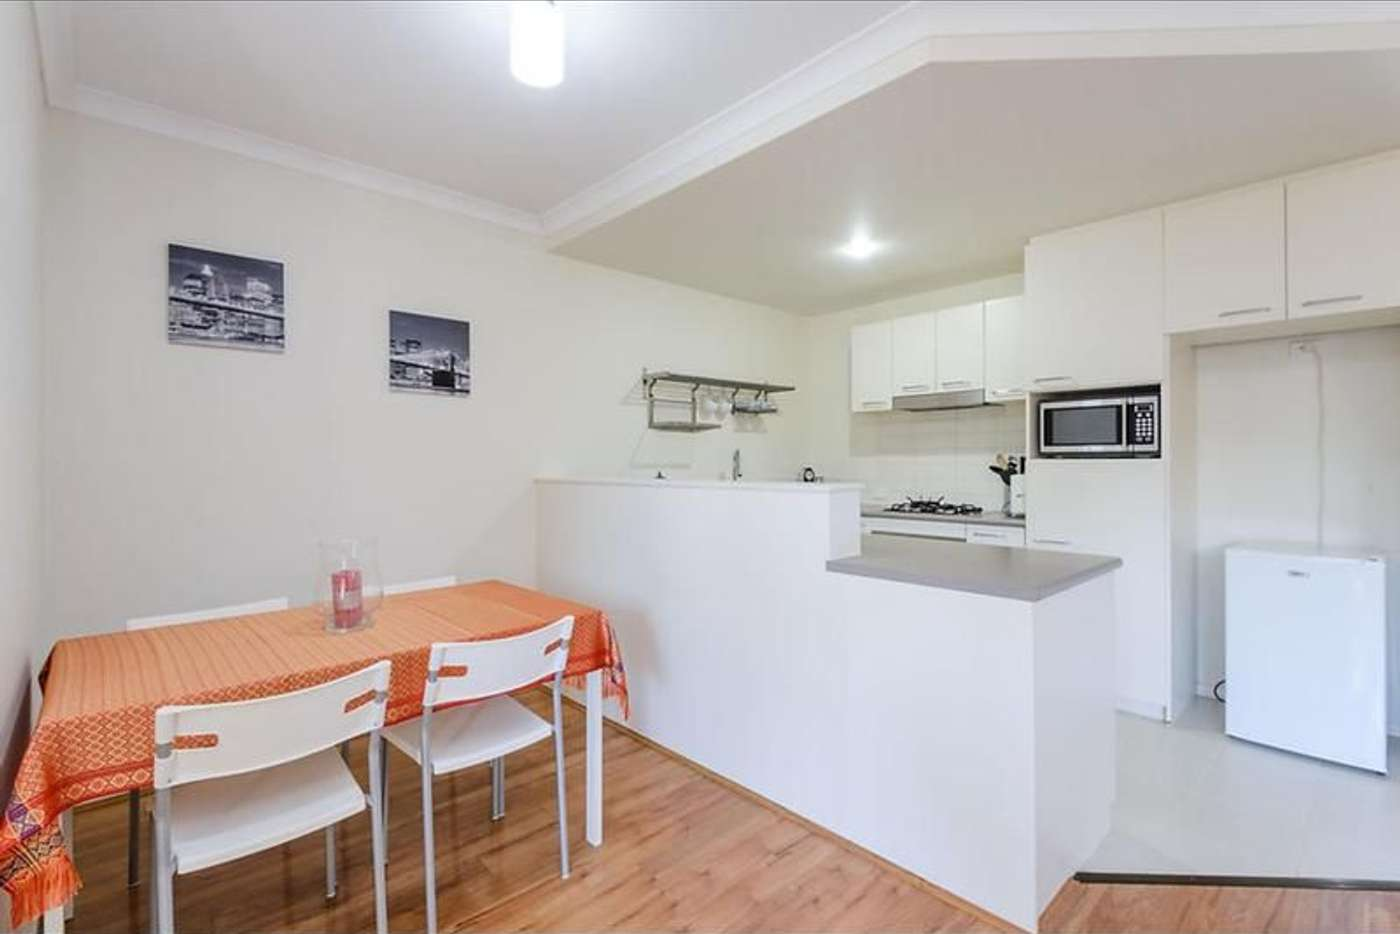 Seventh view of Homely apartment listing, 78/250 Beaufort Street, Perth WA 6000